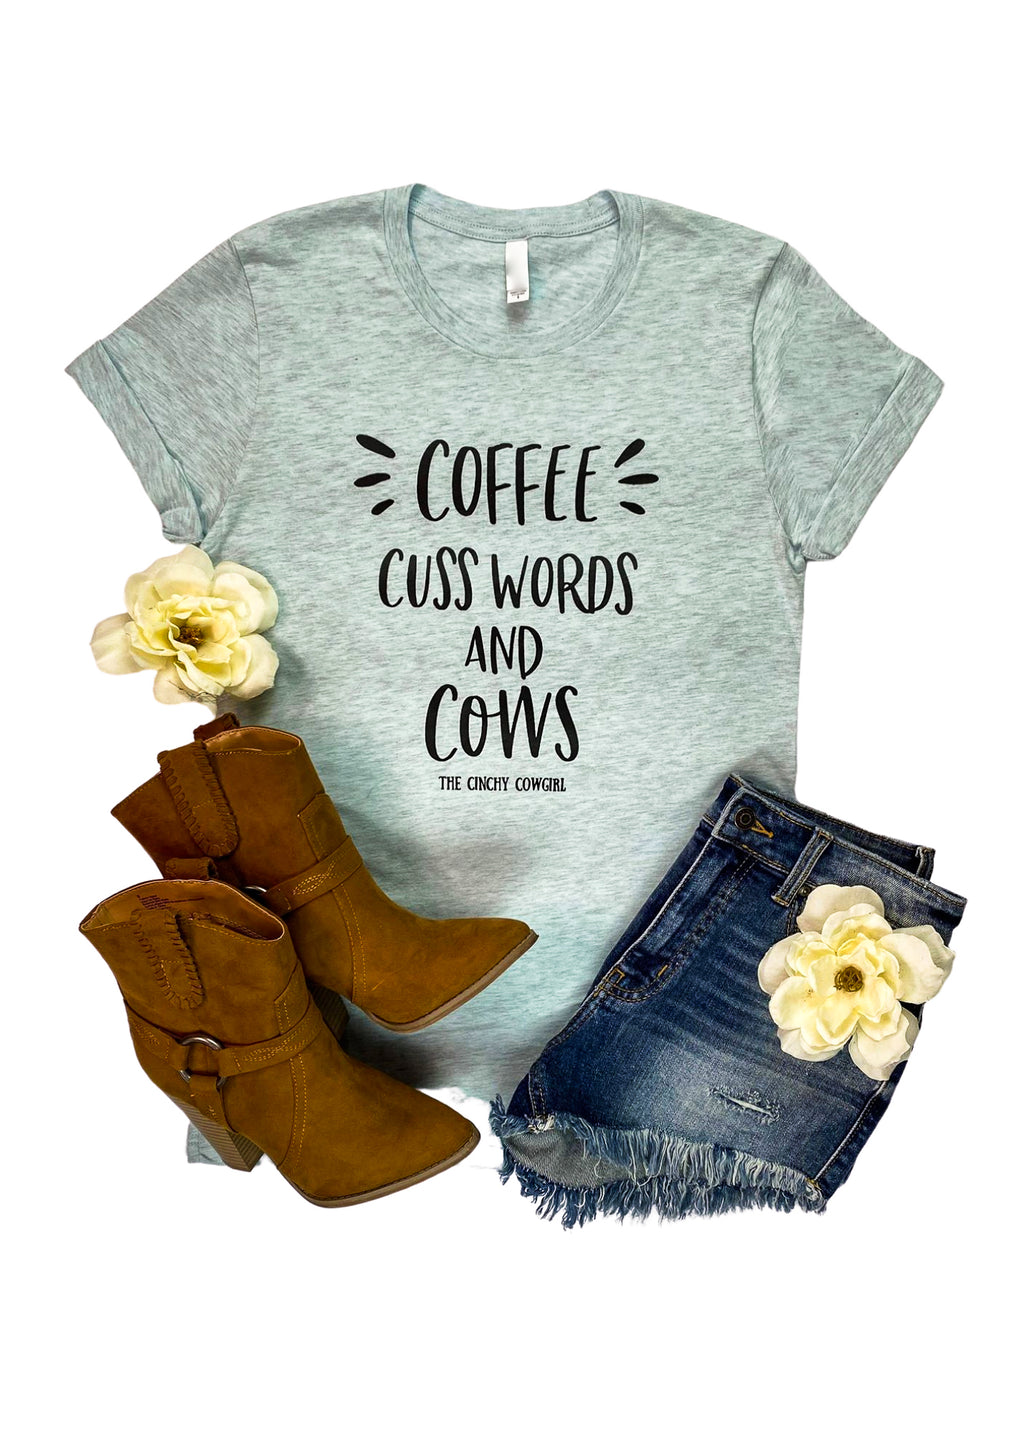 Ice Blue Short Sleeve Tee with Coffee, Cuss Words And Cows in Black Ink in the center